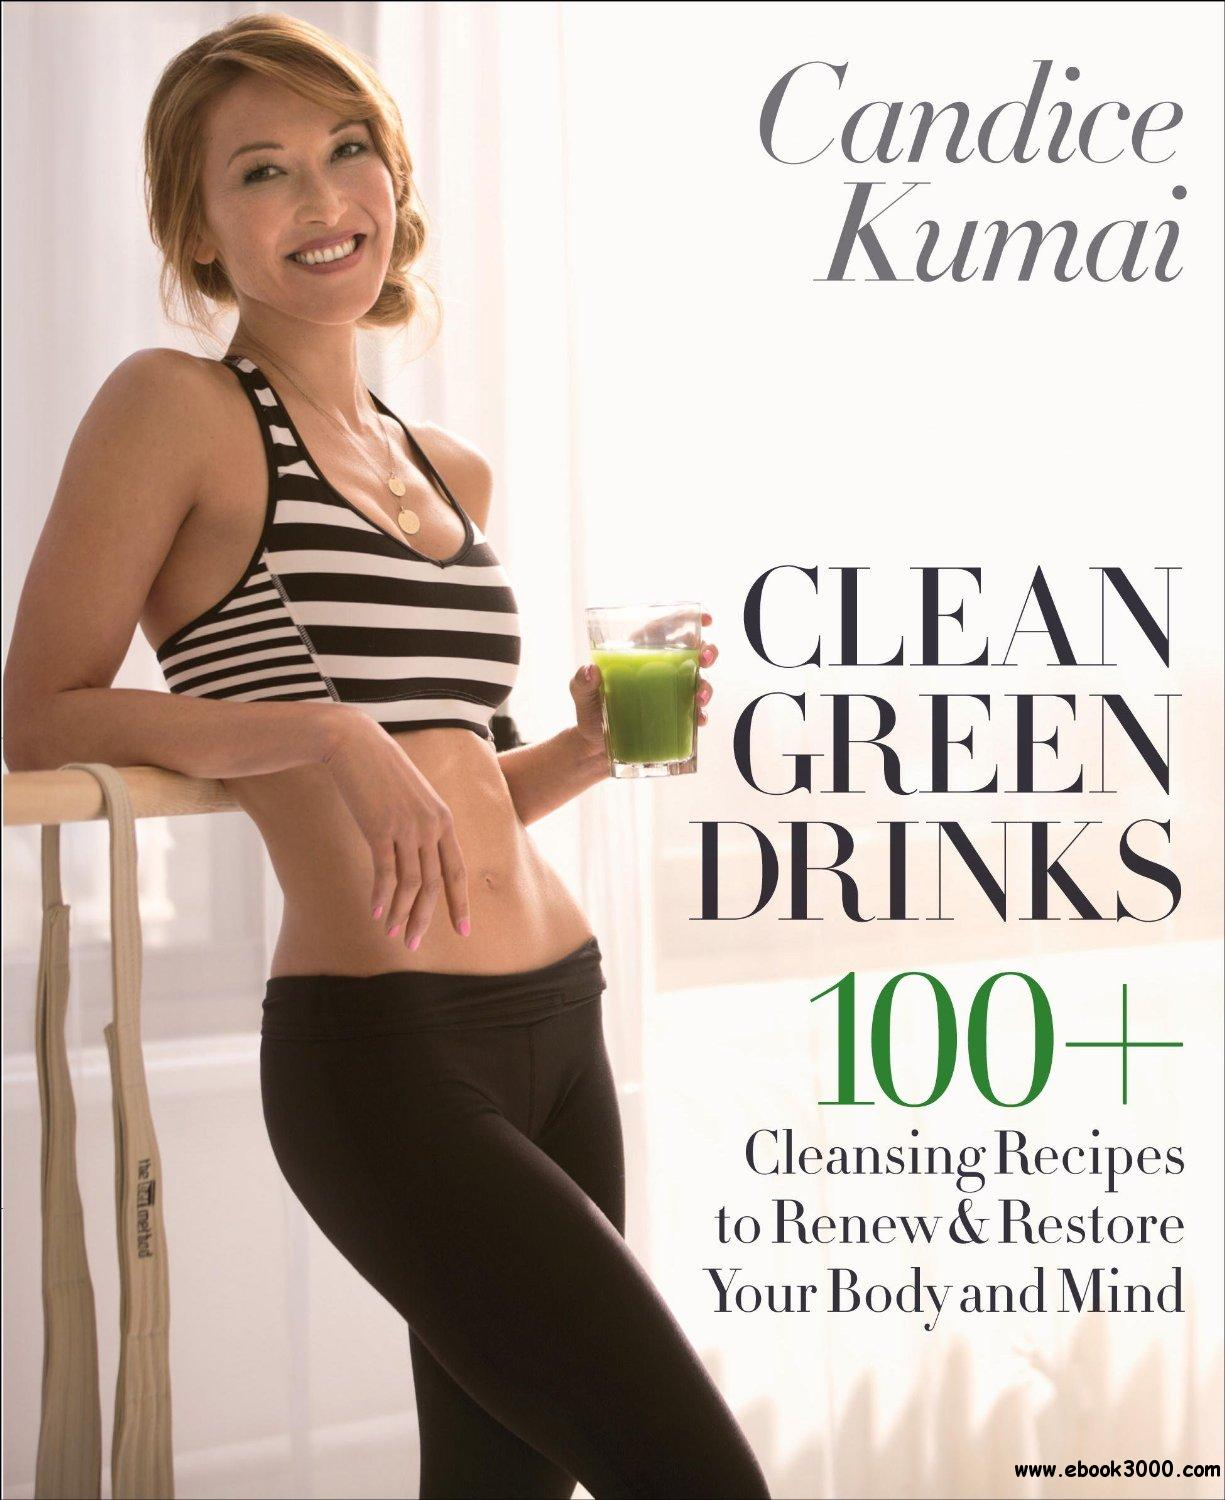 Clean Green Drinks: 100+ Cleansing Recipes to Renew & Restore Your Body and Mind free download